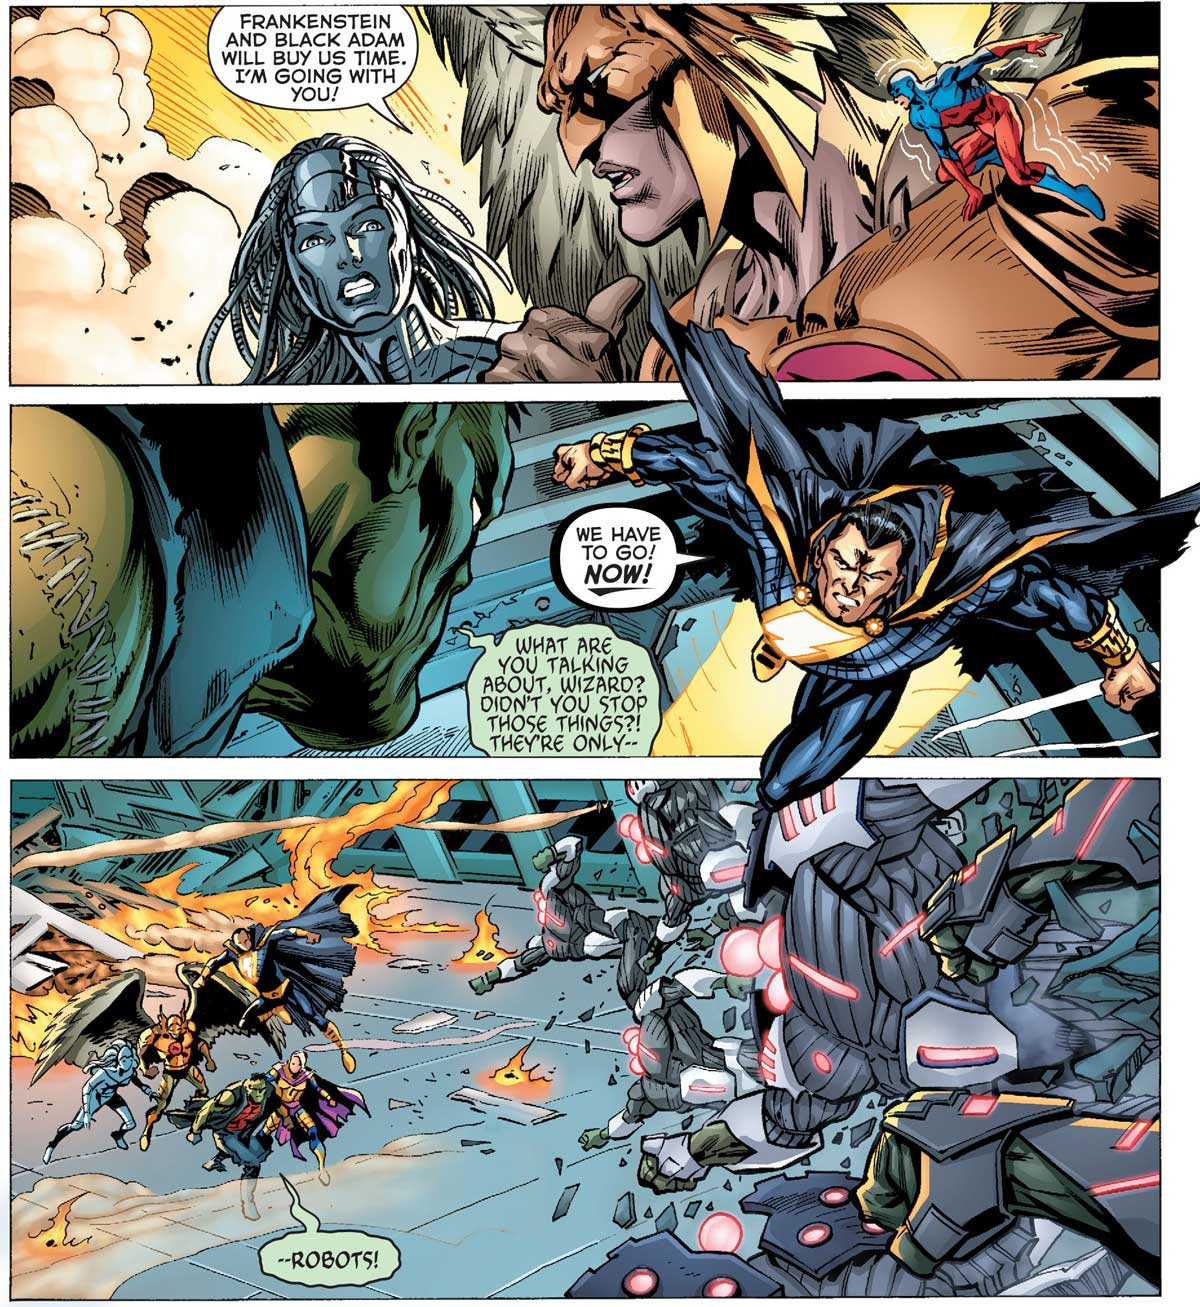 The New 52 Futures End #24